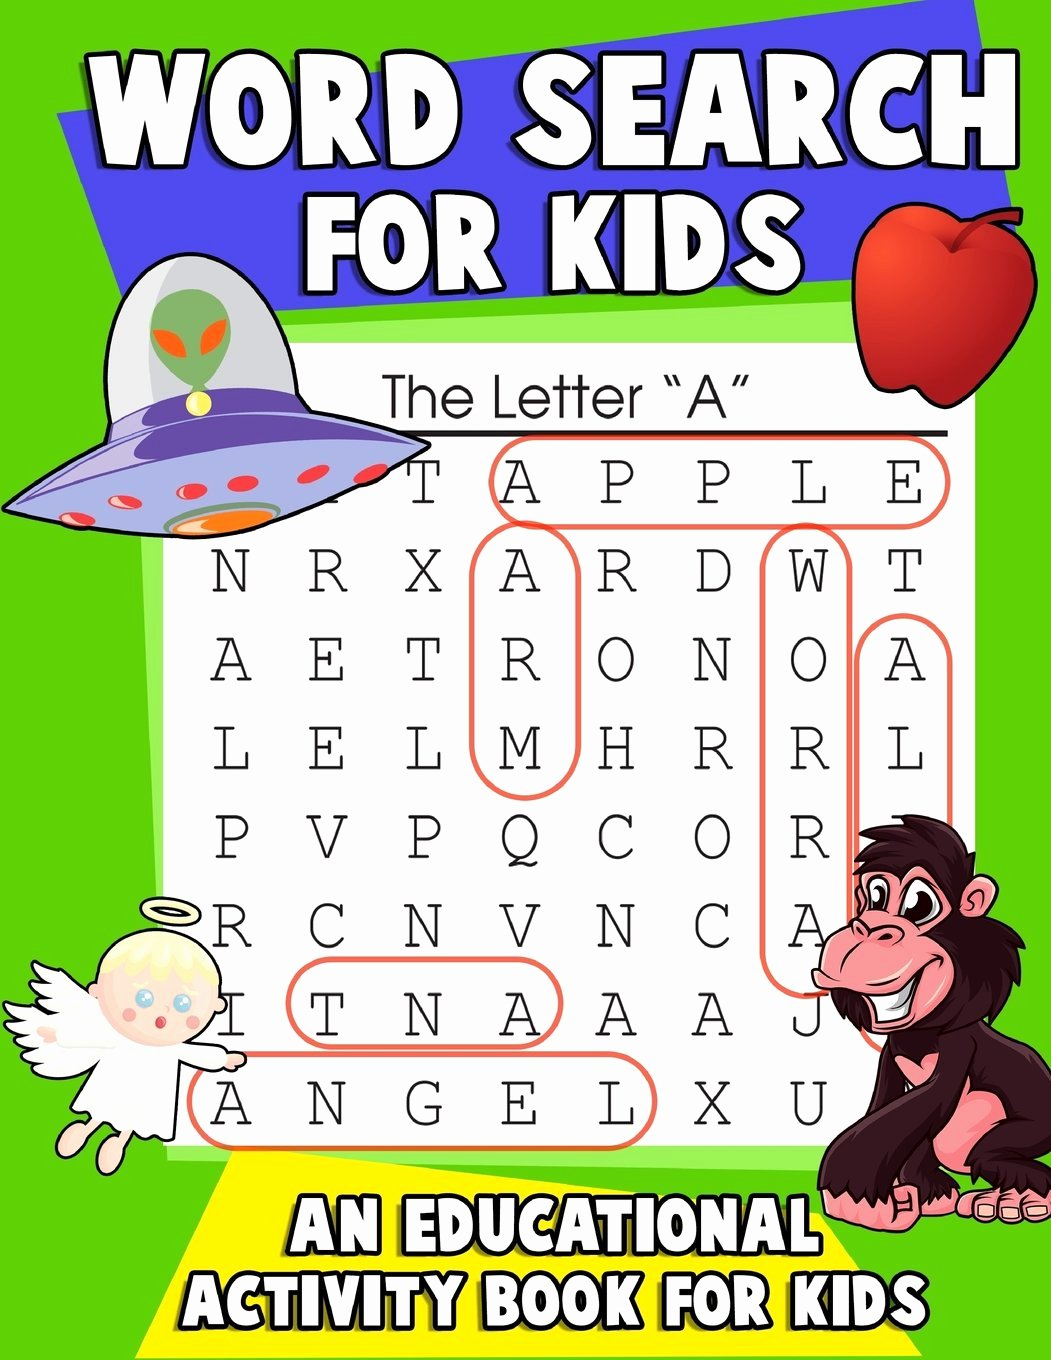 Association Worksheets for Preschoolers Unique Word Search for Kids An Educational Activity Book for Kids